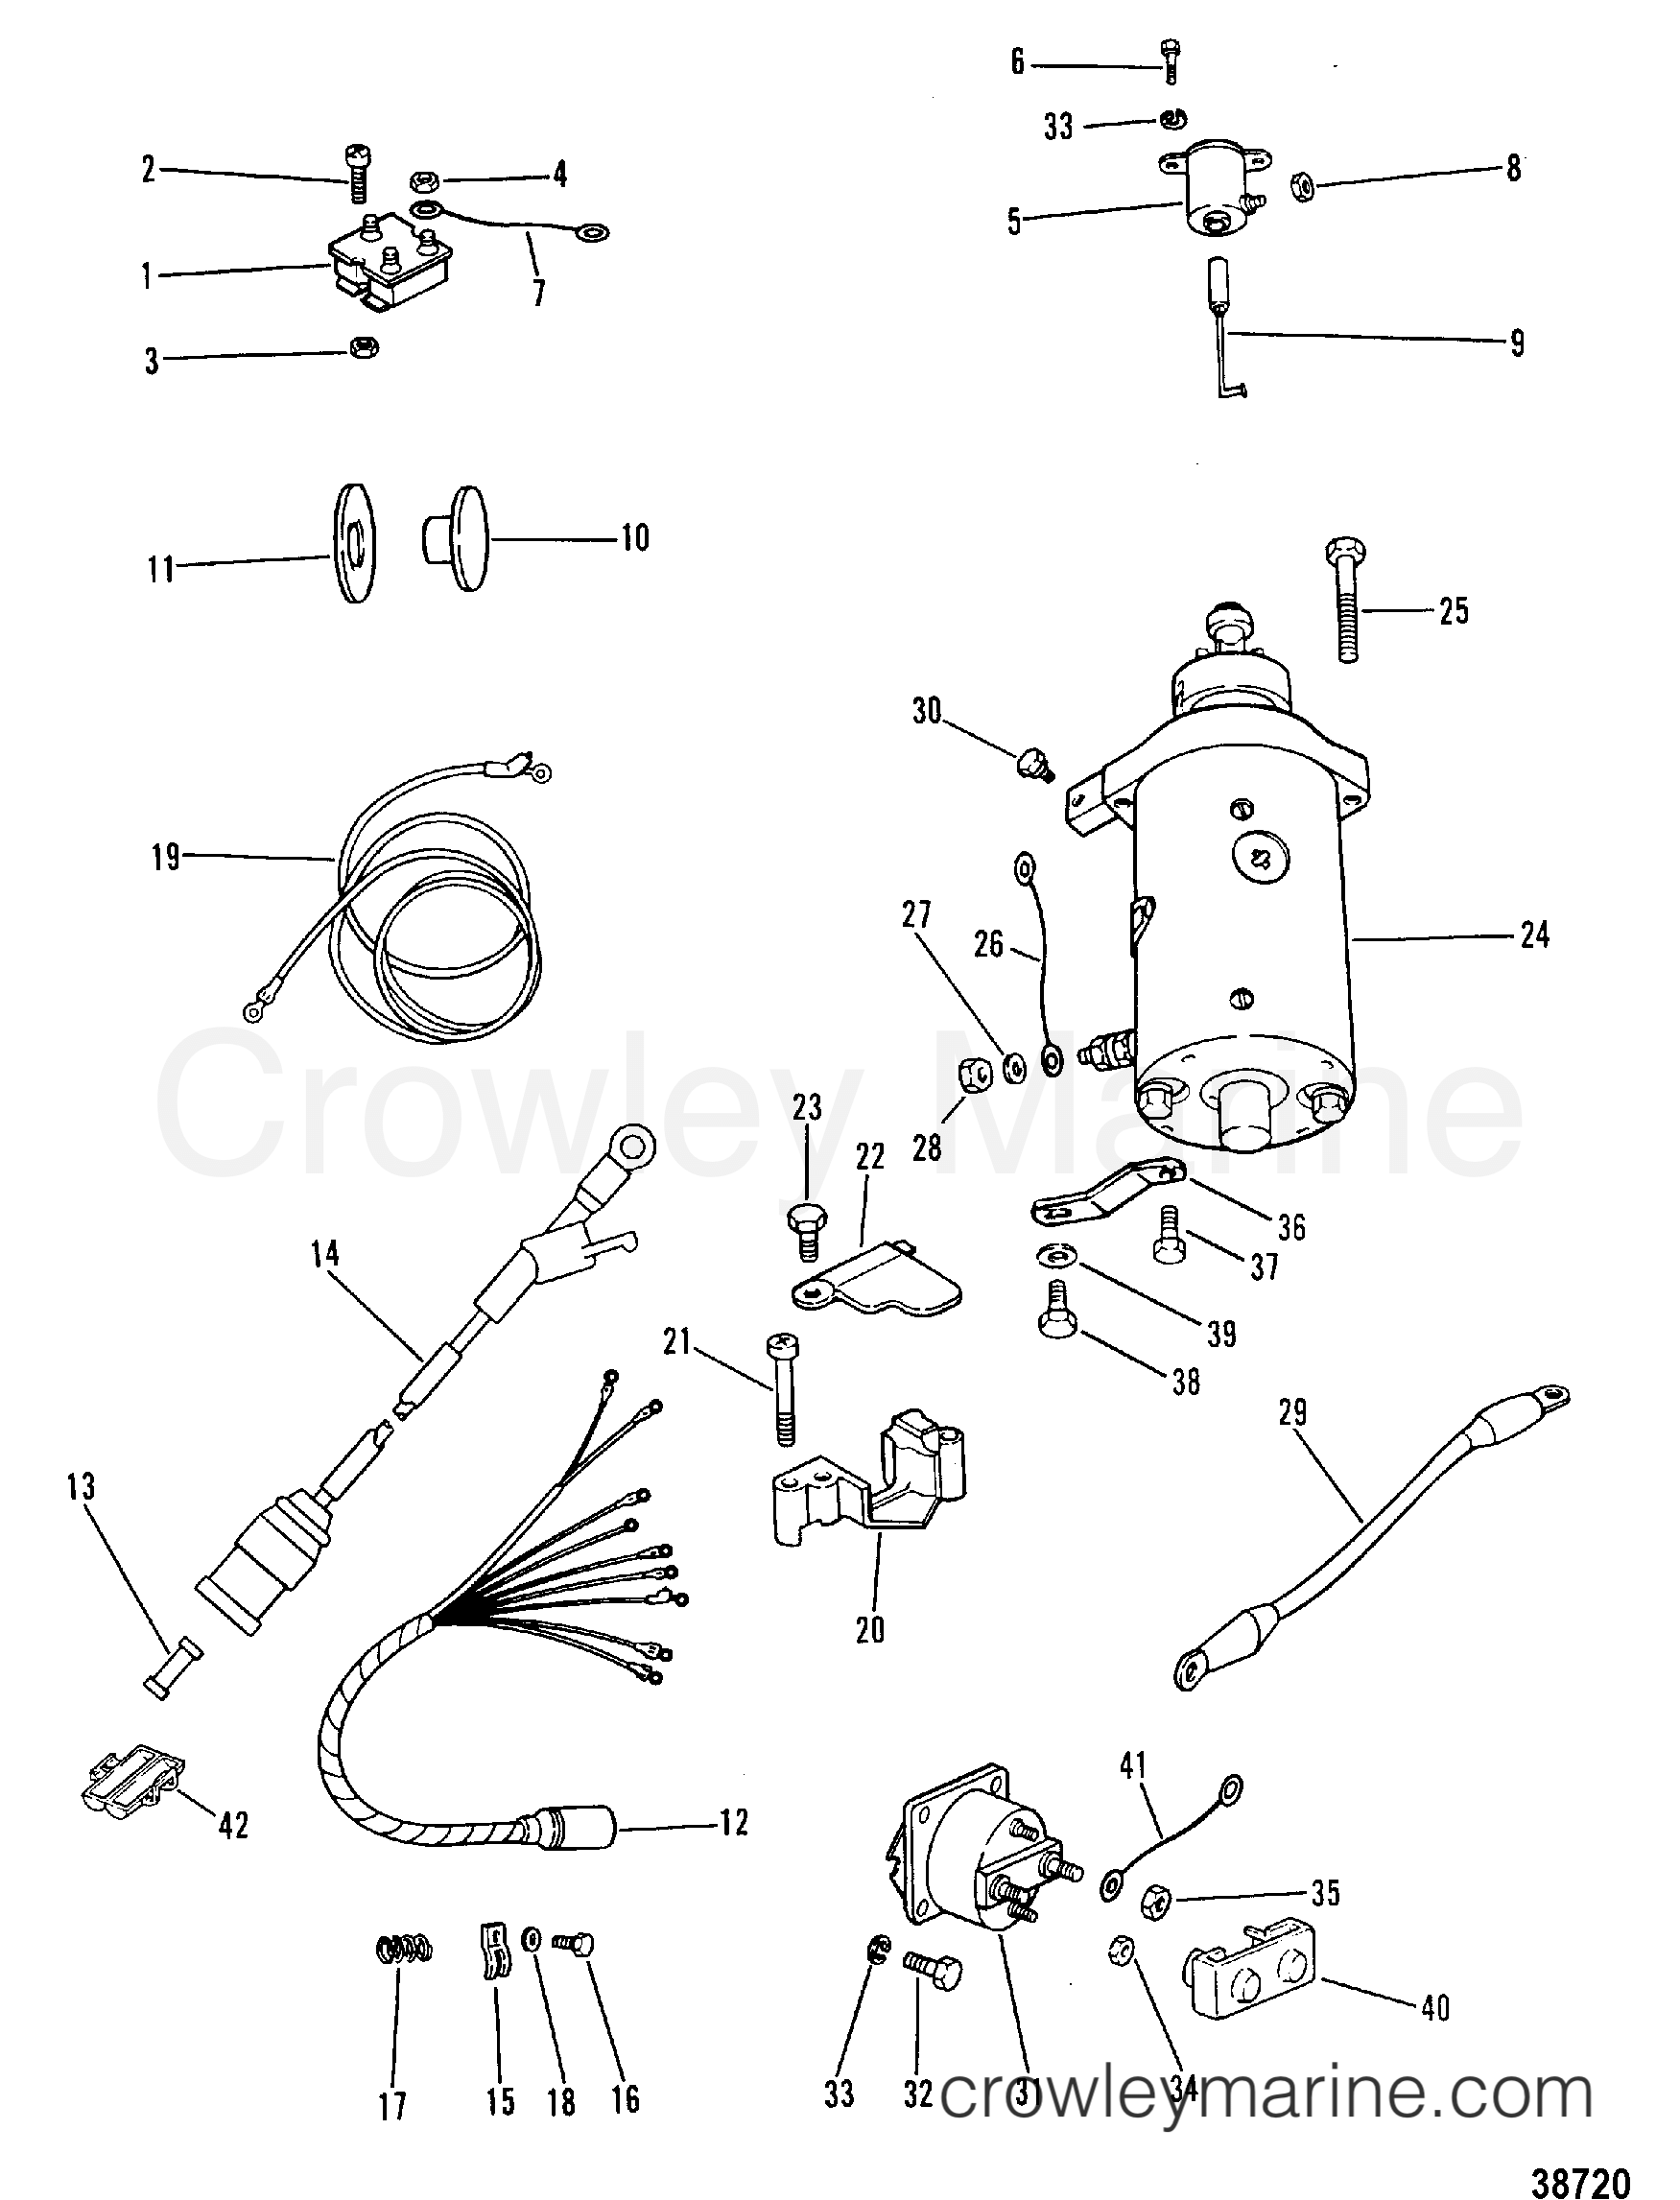 STARTER MOTOR, RECTIFIER AND WIRING HARNESS (ELECTRIC